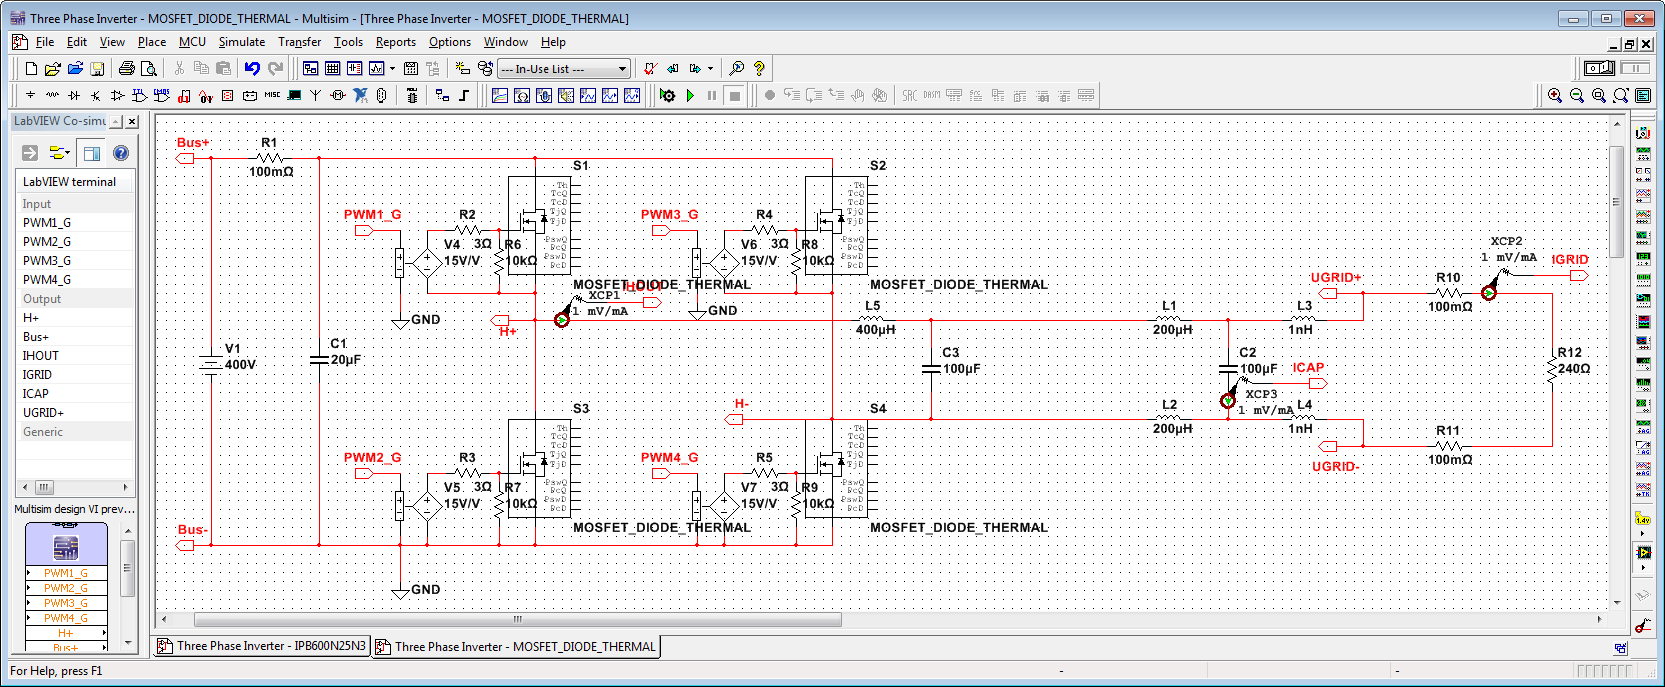 MOSFET_DIODE_THERMAL Schematic.png